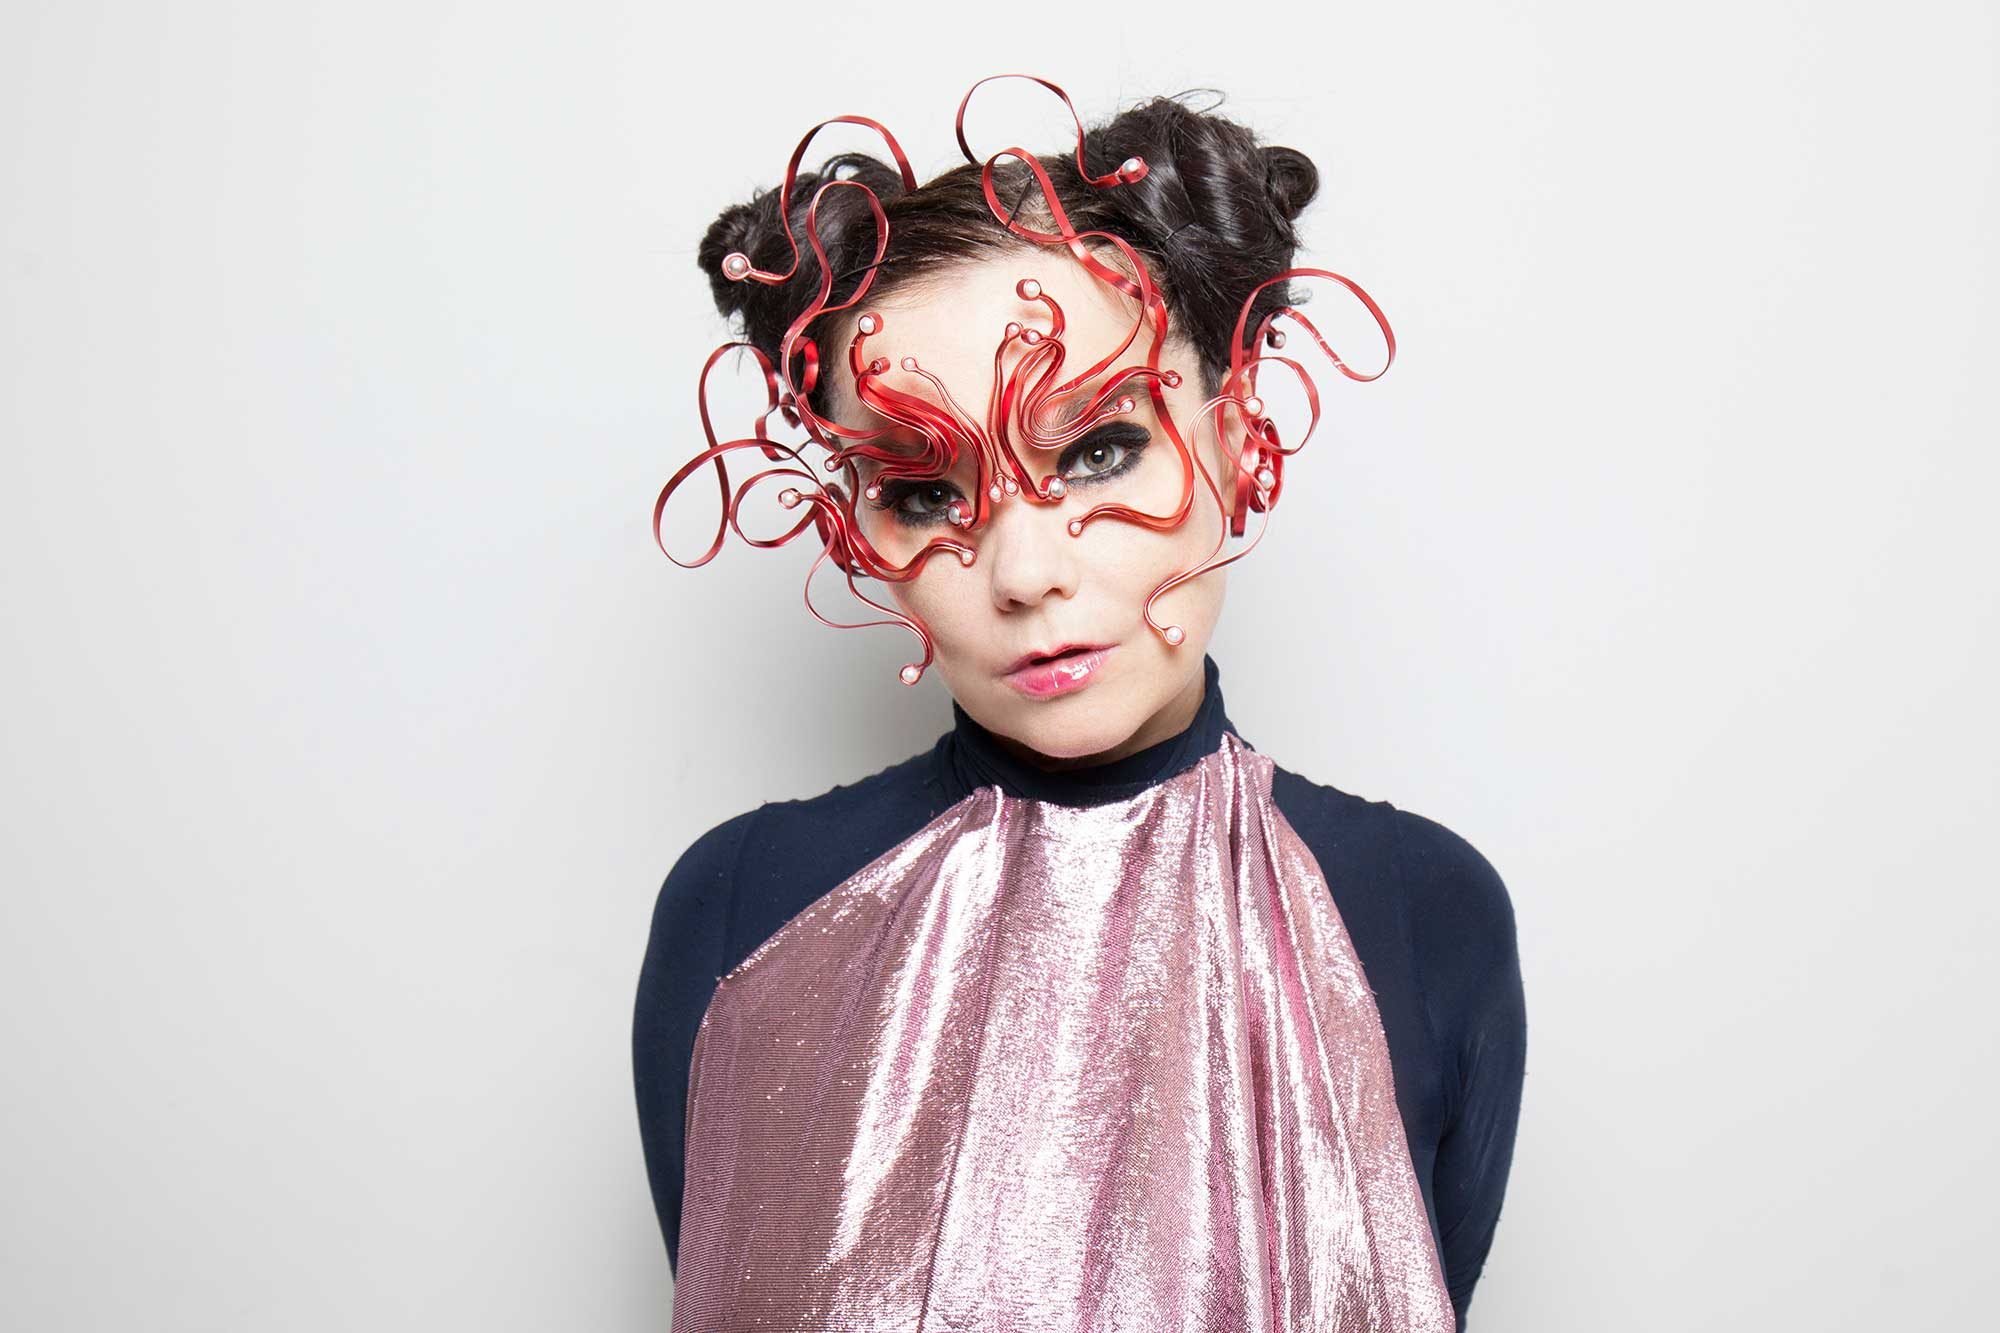 BJORK ANNOUNCES NEW ALBUM